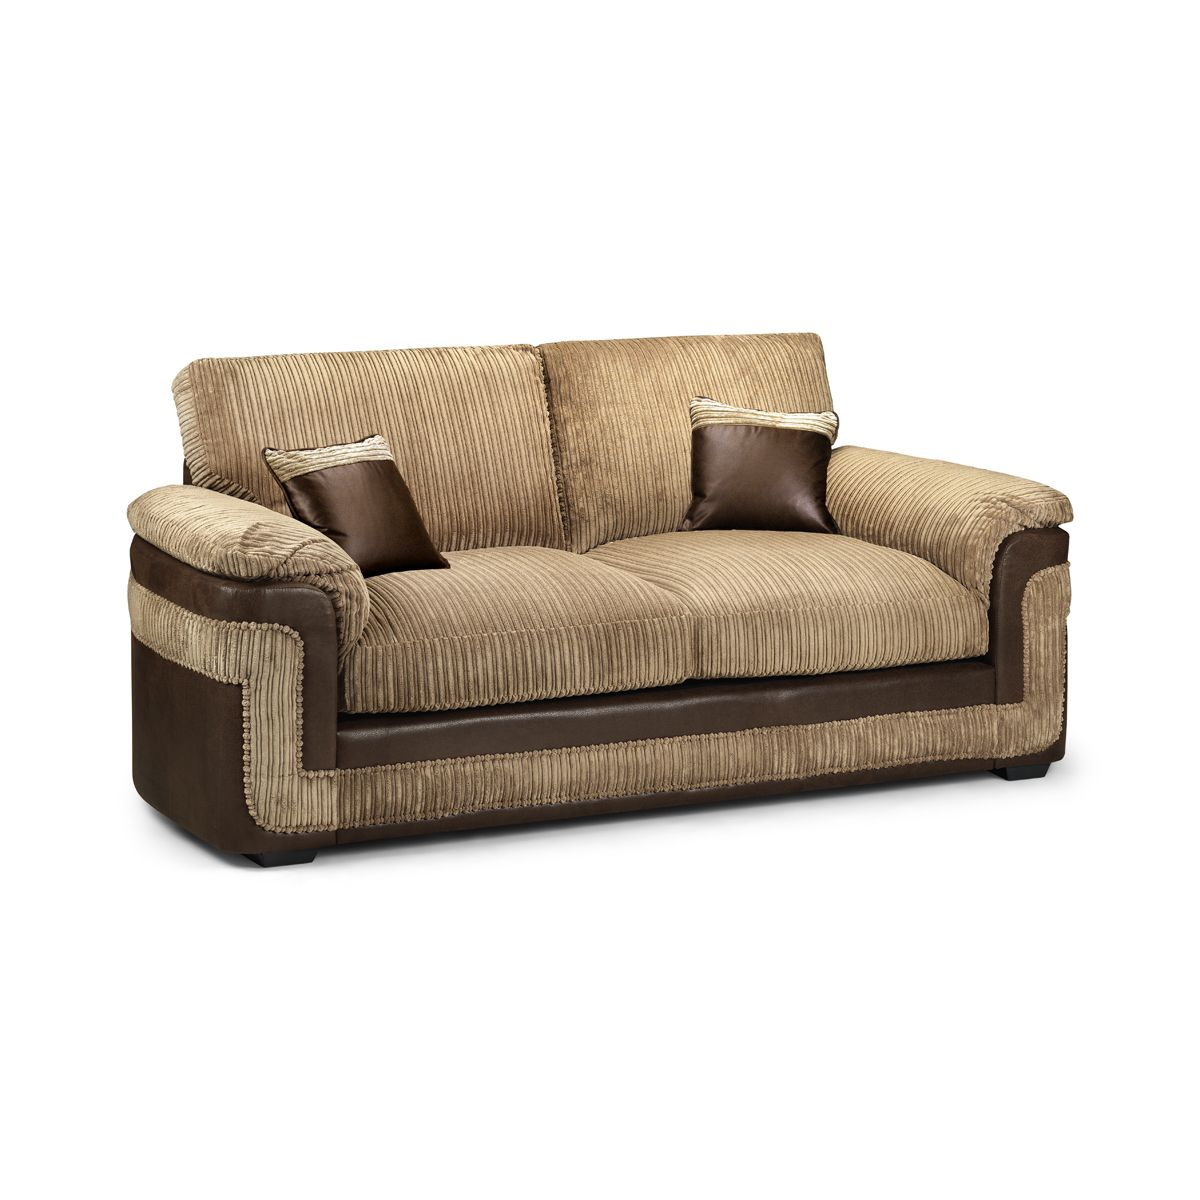 Davina 3 Seater Sofa Only 349 At Sofa Success Sofa Luxury Sofa Modern 2 Seater Sofa